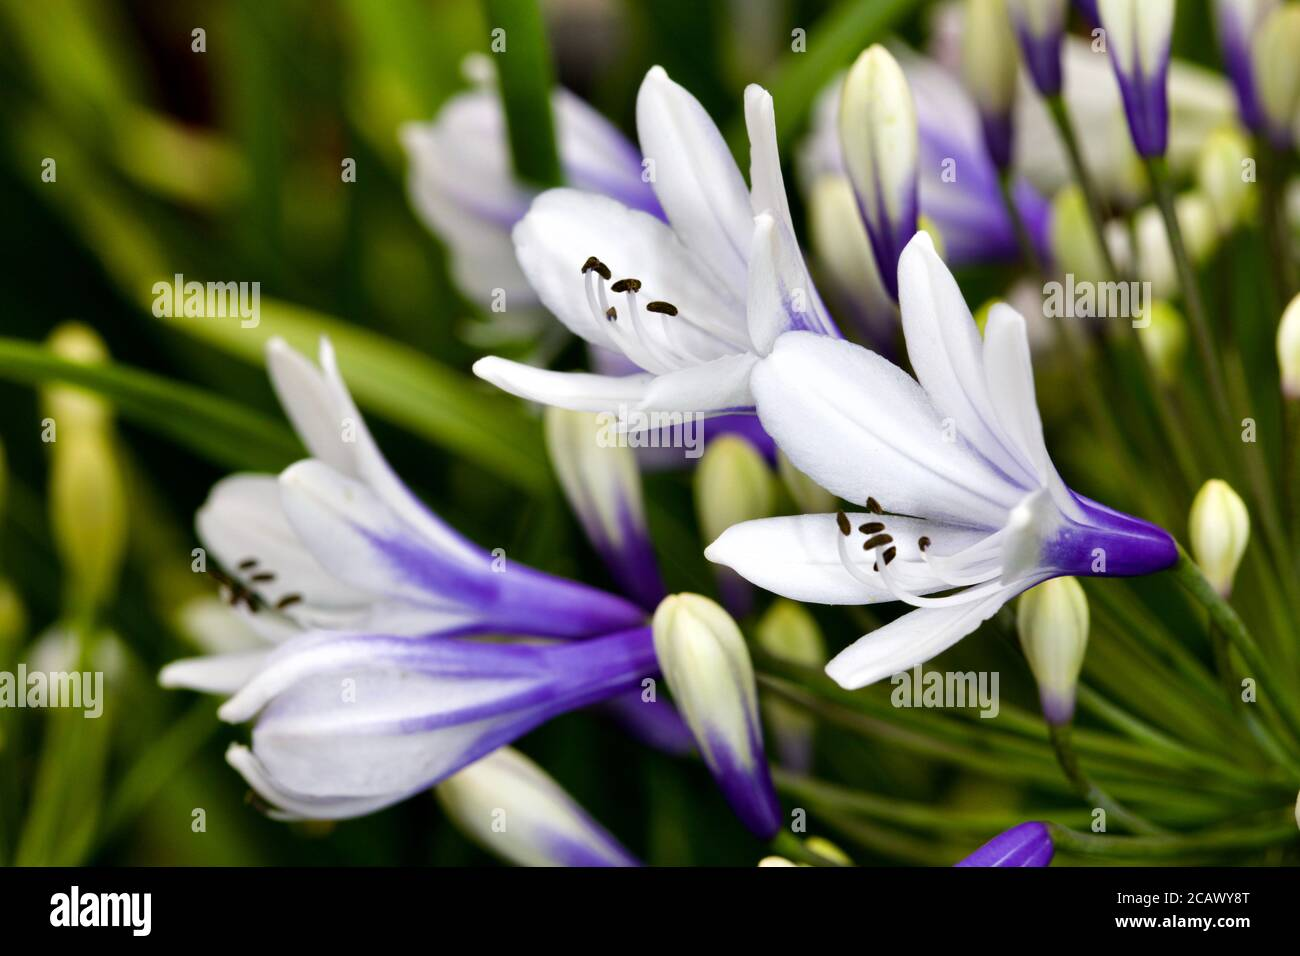 Agapanthus africanus 'Twister' Stock Photo